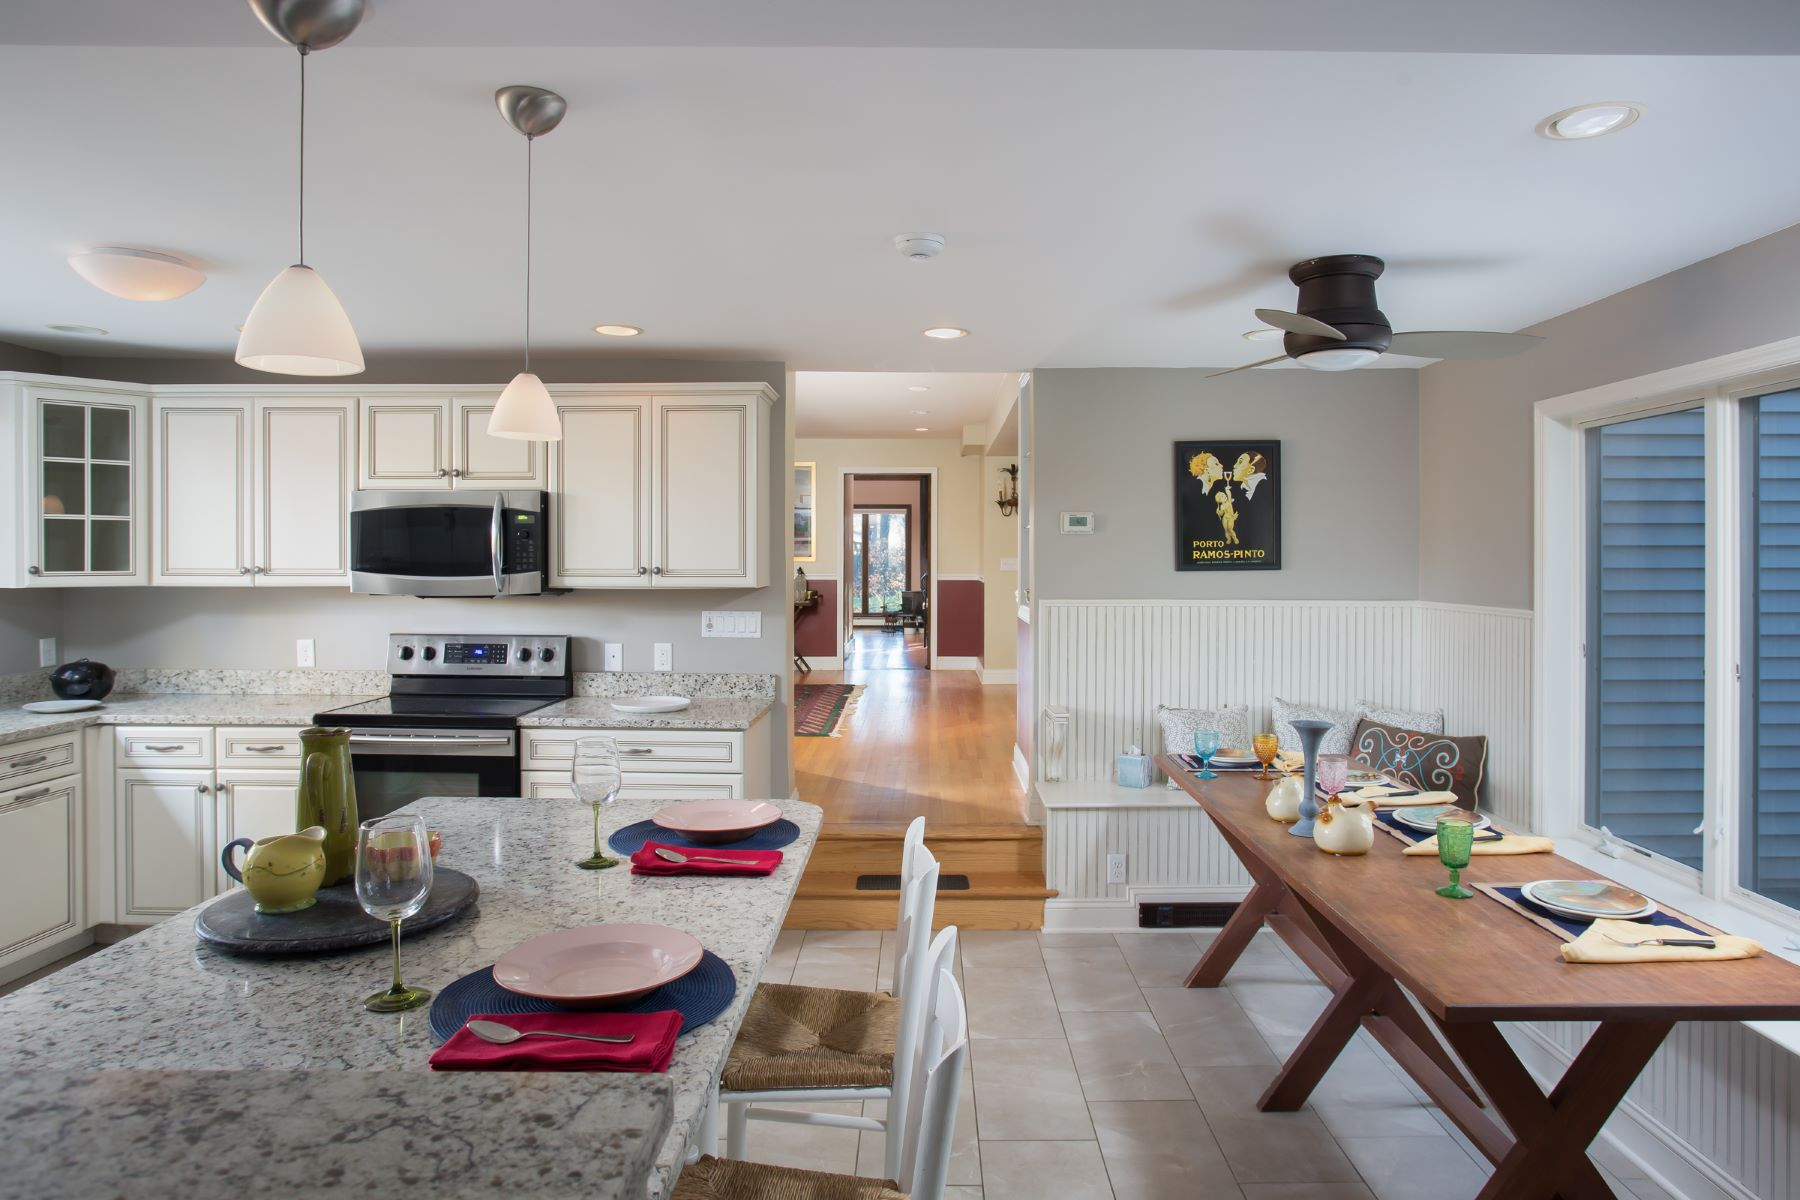 Single Family Home for Sale at Spacious, Centrally Located Contemporary 871 East St, Lenox, Massachusetts, 01240 United States